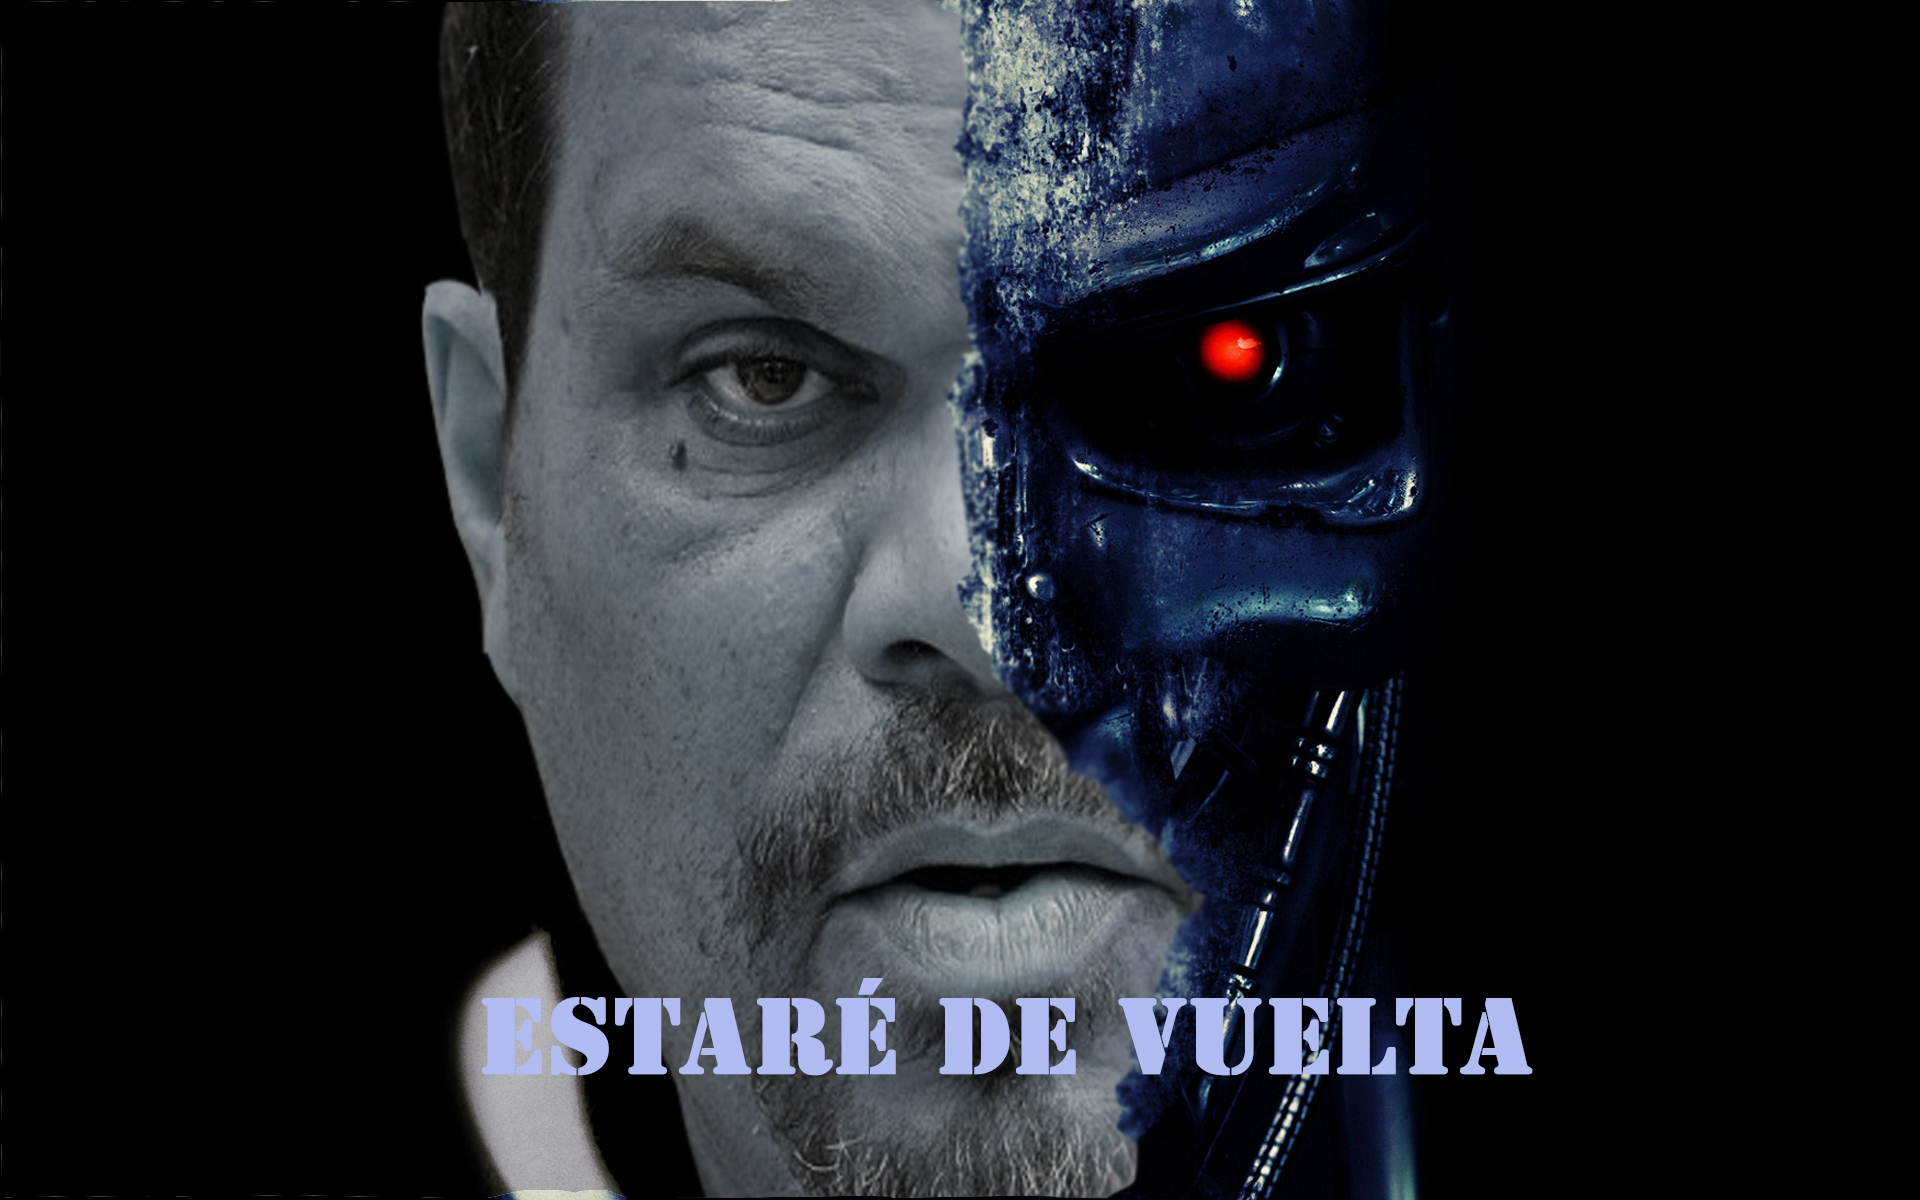 Luis Guzman as the Terminator Media by Austin Stephens